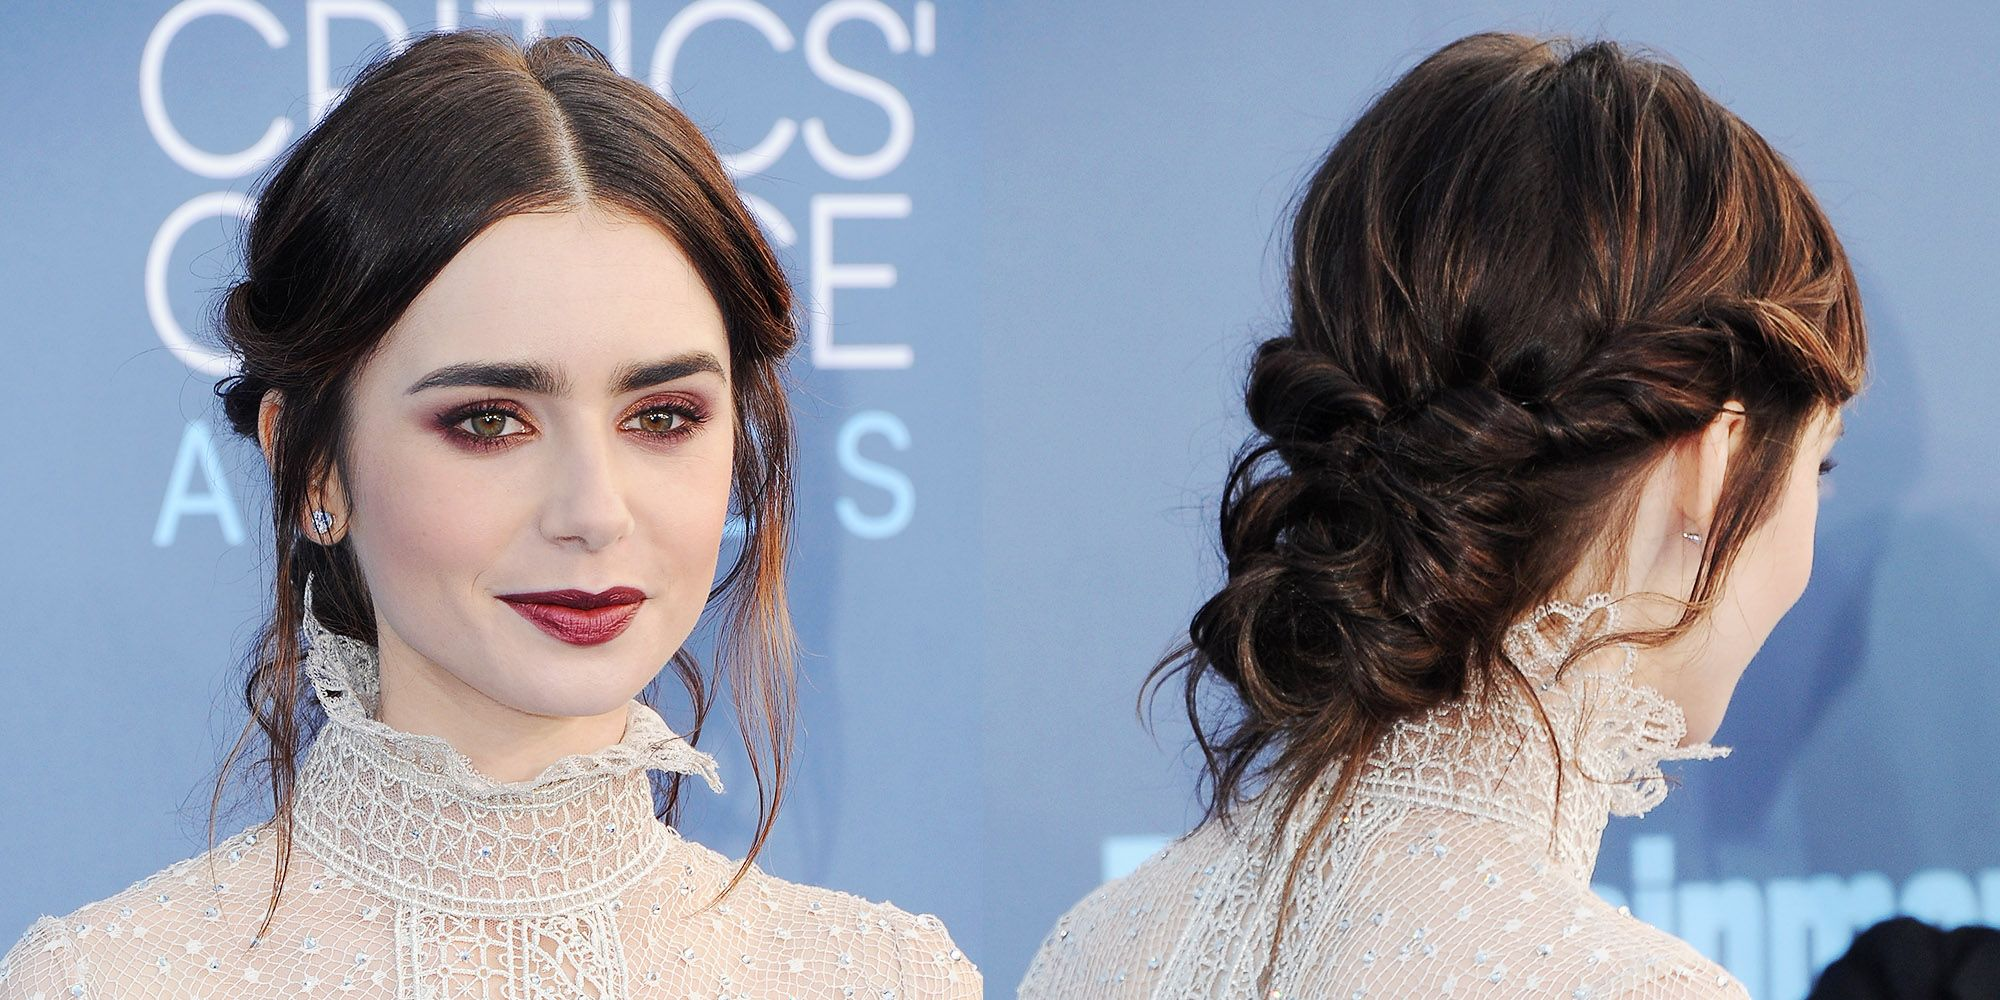 <p>Lily Collins' hairstyle combines a sleek middle part with a messy low bun. After parting your hair in the middle and curling the bottom half of your hair, twist both sides back and twirl random sections into a bun, securing where necessary. Leave a few stray pieces at the front to frame your face. </p>